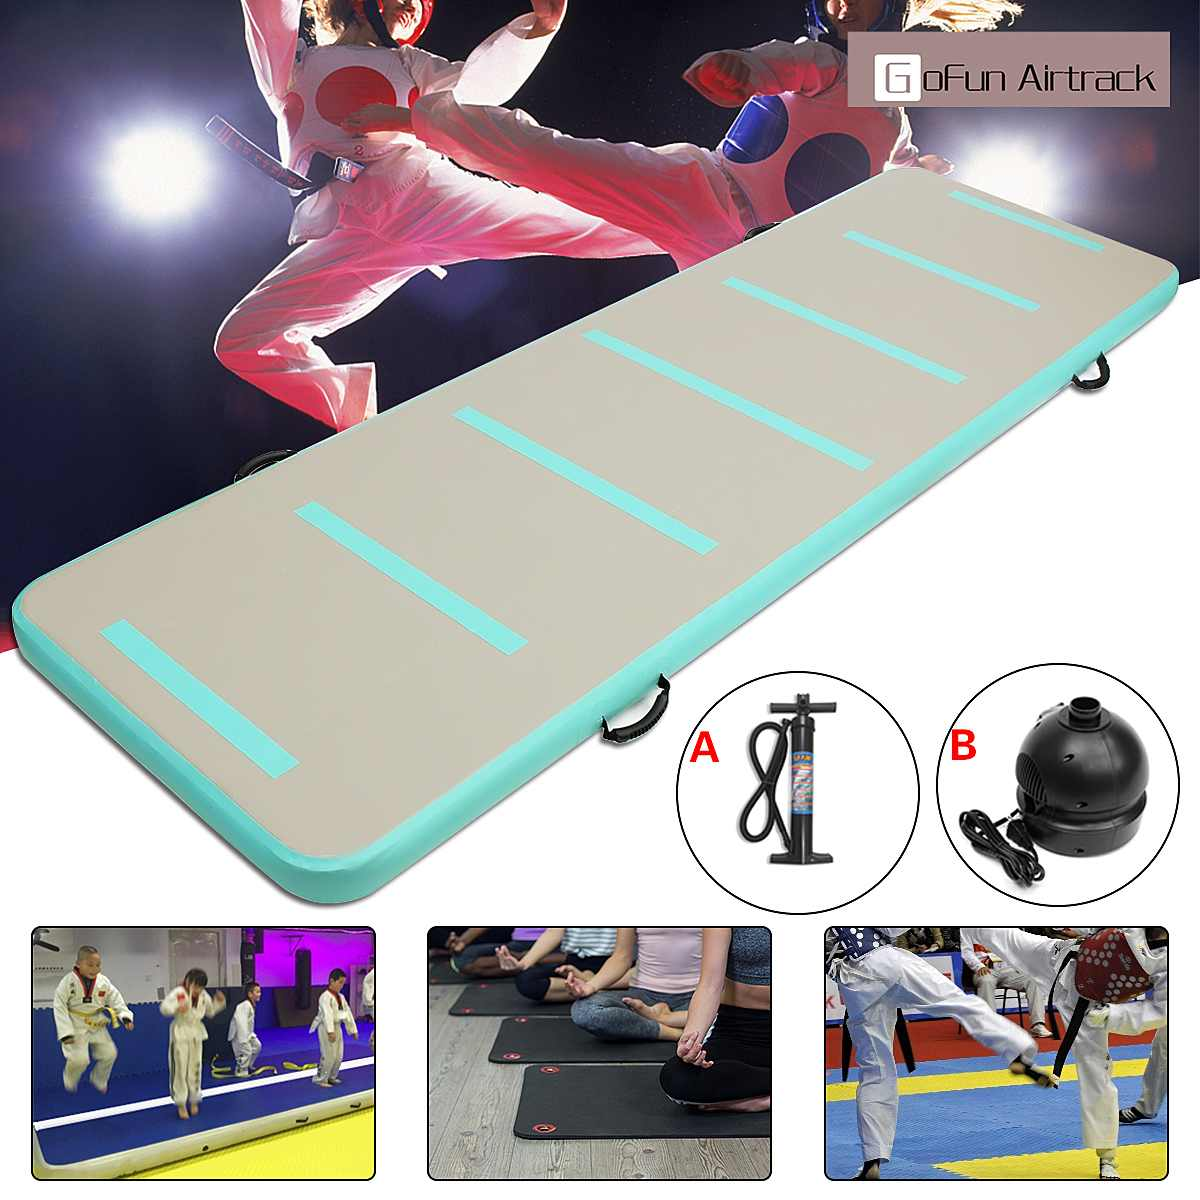 GoFun 90cm*3m*10cm Inflatable Air Track Floor Home Gymnastic Cheerleading Tumbling Mat GYM with Hand Pump/110V/220V air pumpGoFun 90cm*3m*10cm Inflatable Air Track Floor Home Gymnastic Cheerleading Tumbling Mat GYM with Hand Pump/110V/220V air pump